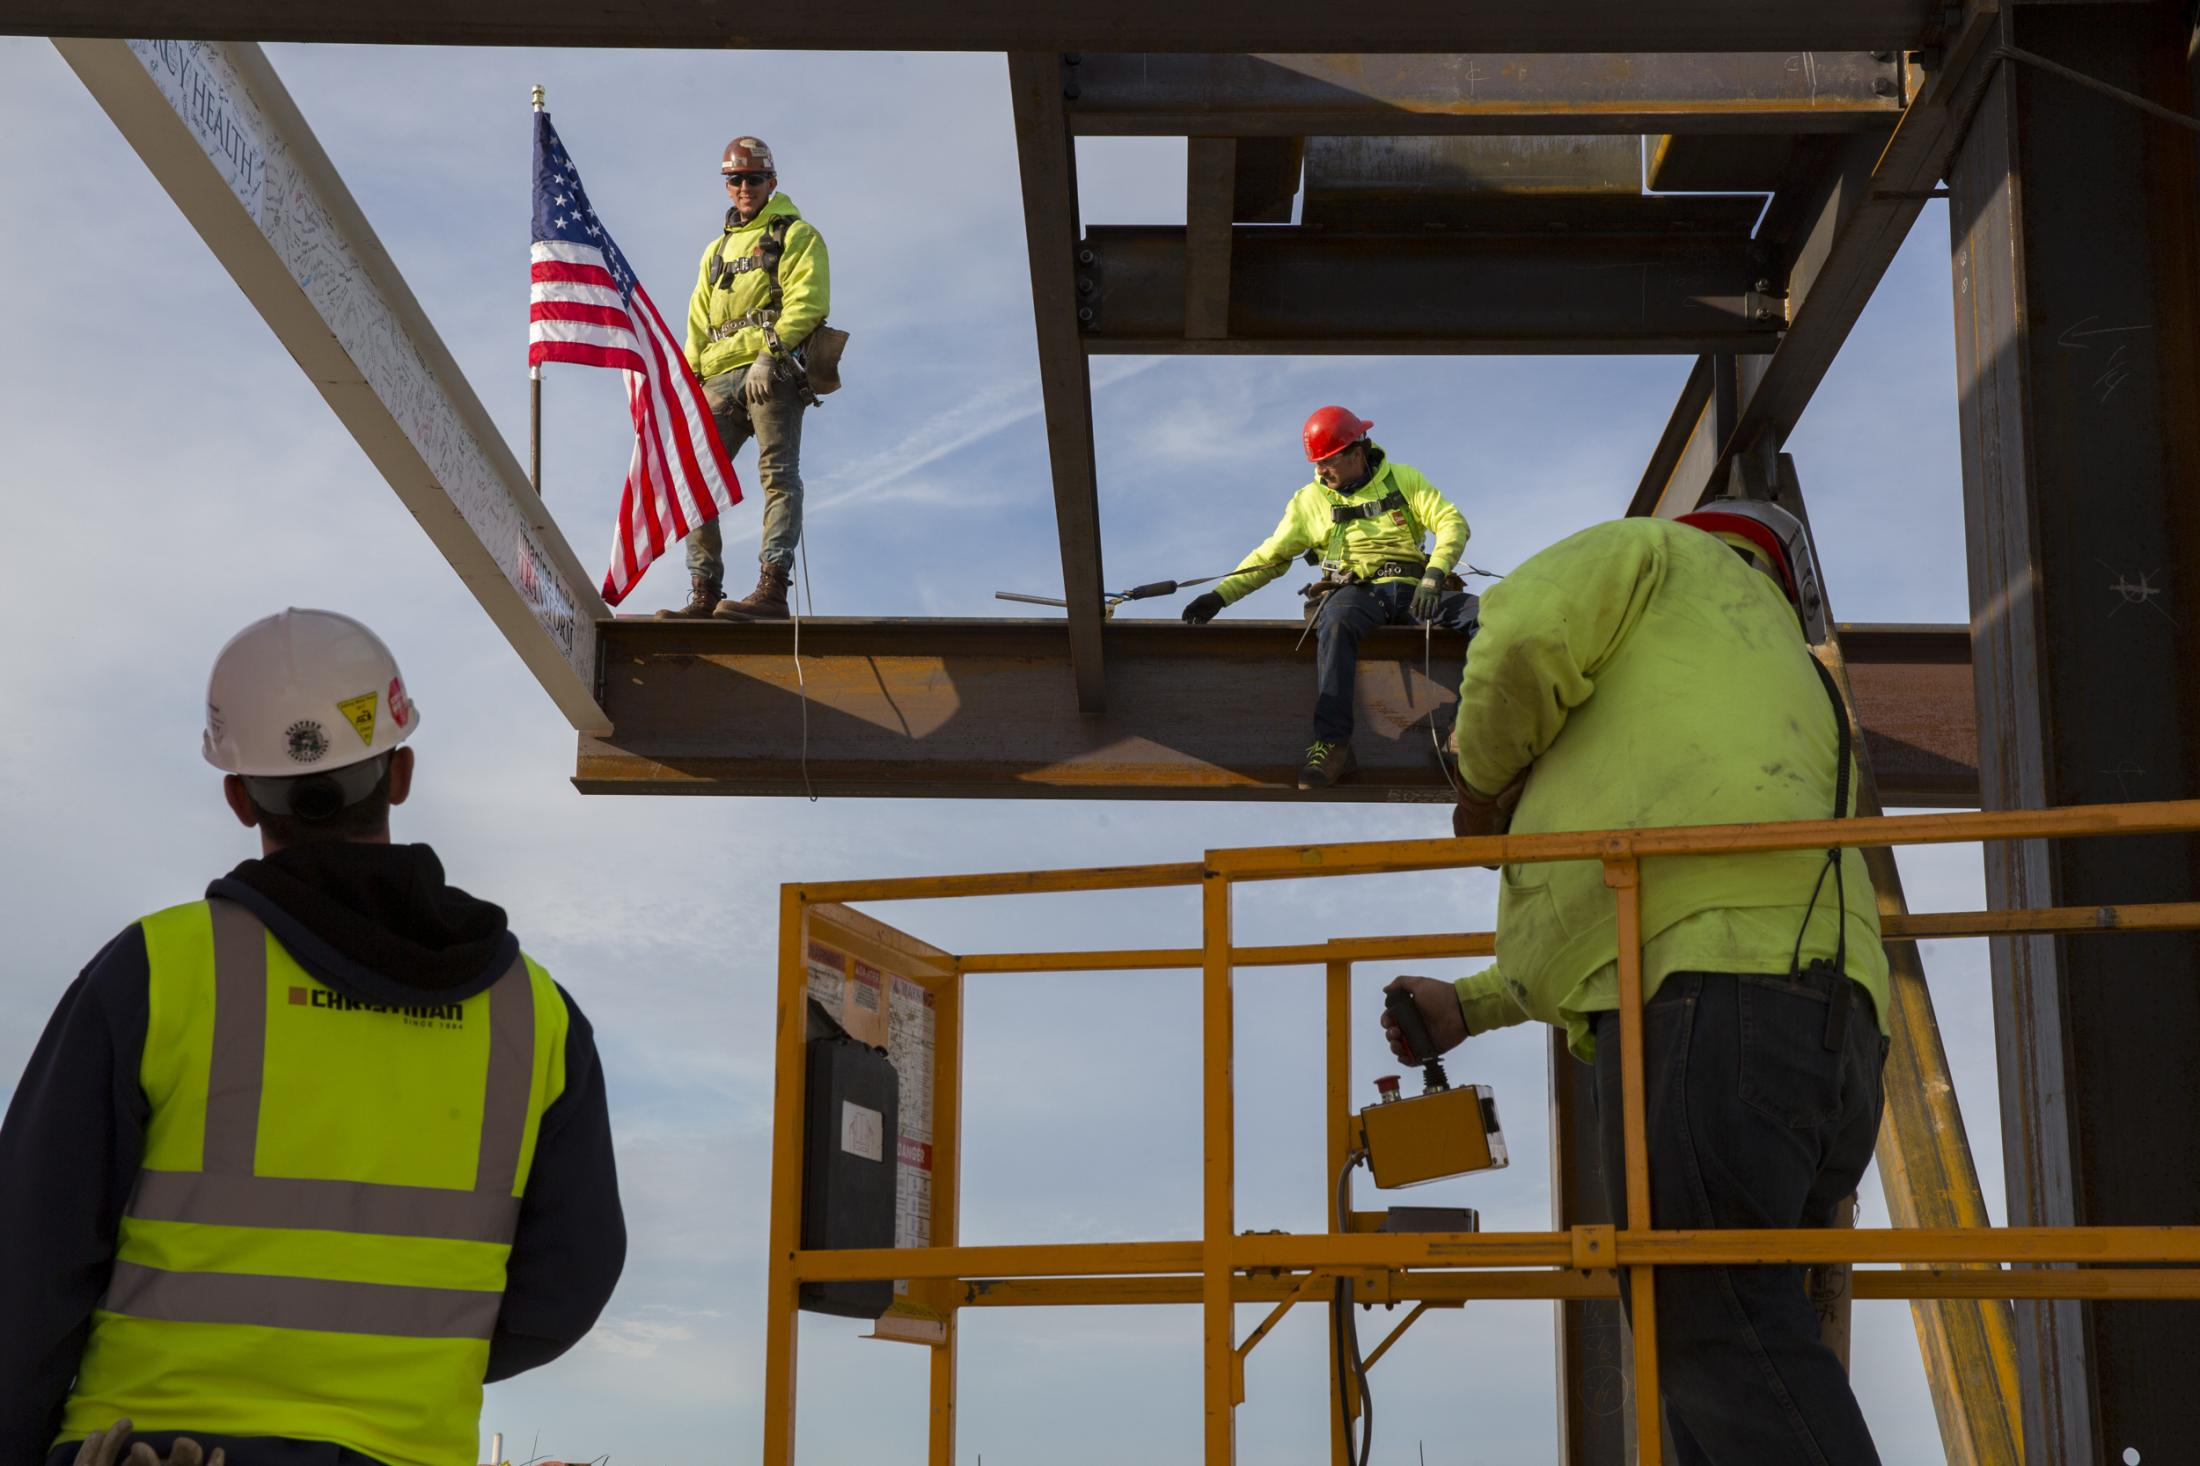 Crew members put the last structural beam into place at the construction site of the 10-story Mercy Health medical center in Muskegon, Michigan on Oct. 26, 2017.